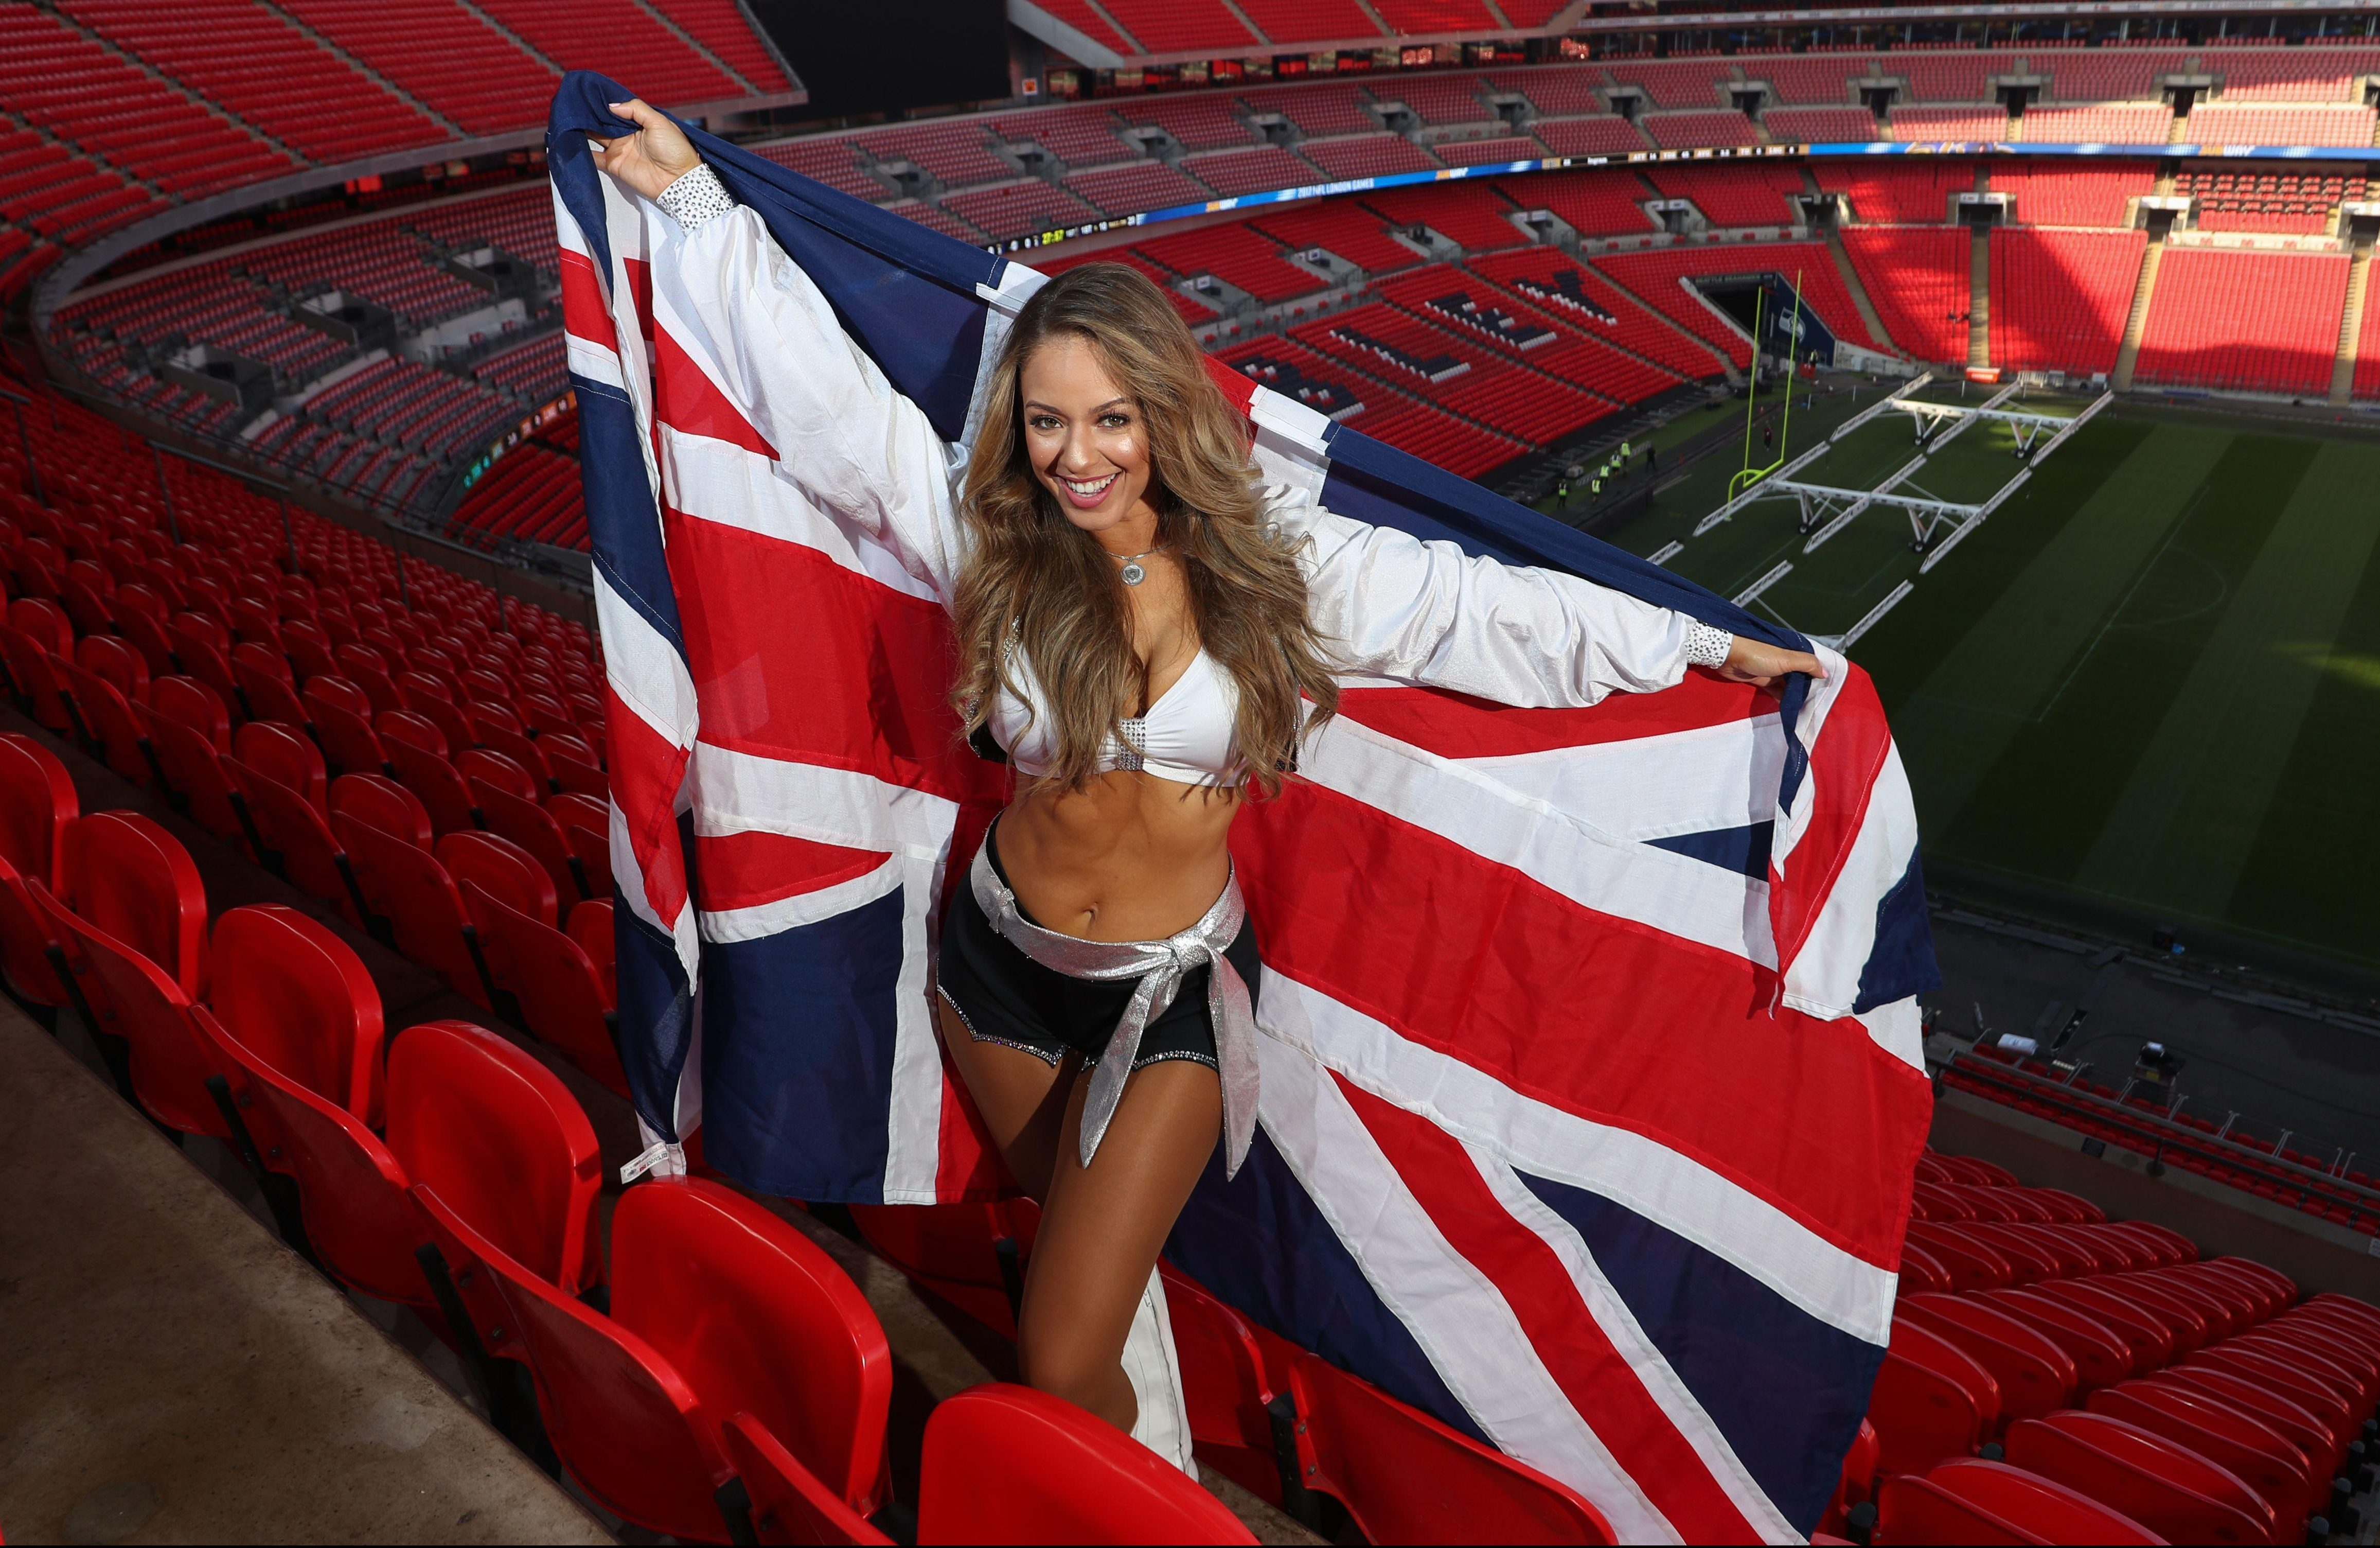 The Raiderettes will be hoping to cheer the Oakland Raiders to victory over the Seattle Seahawks